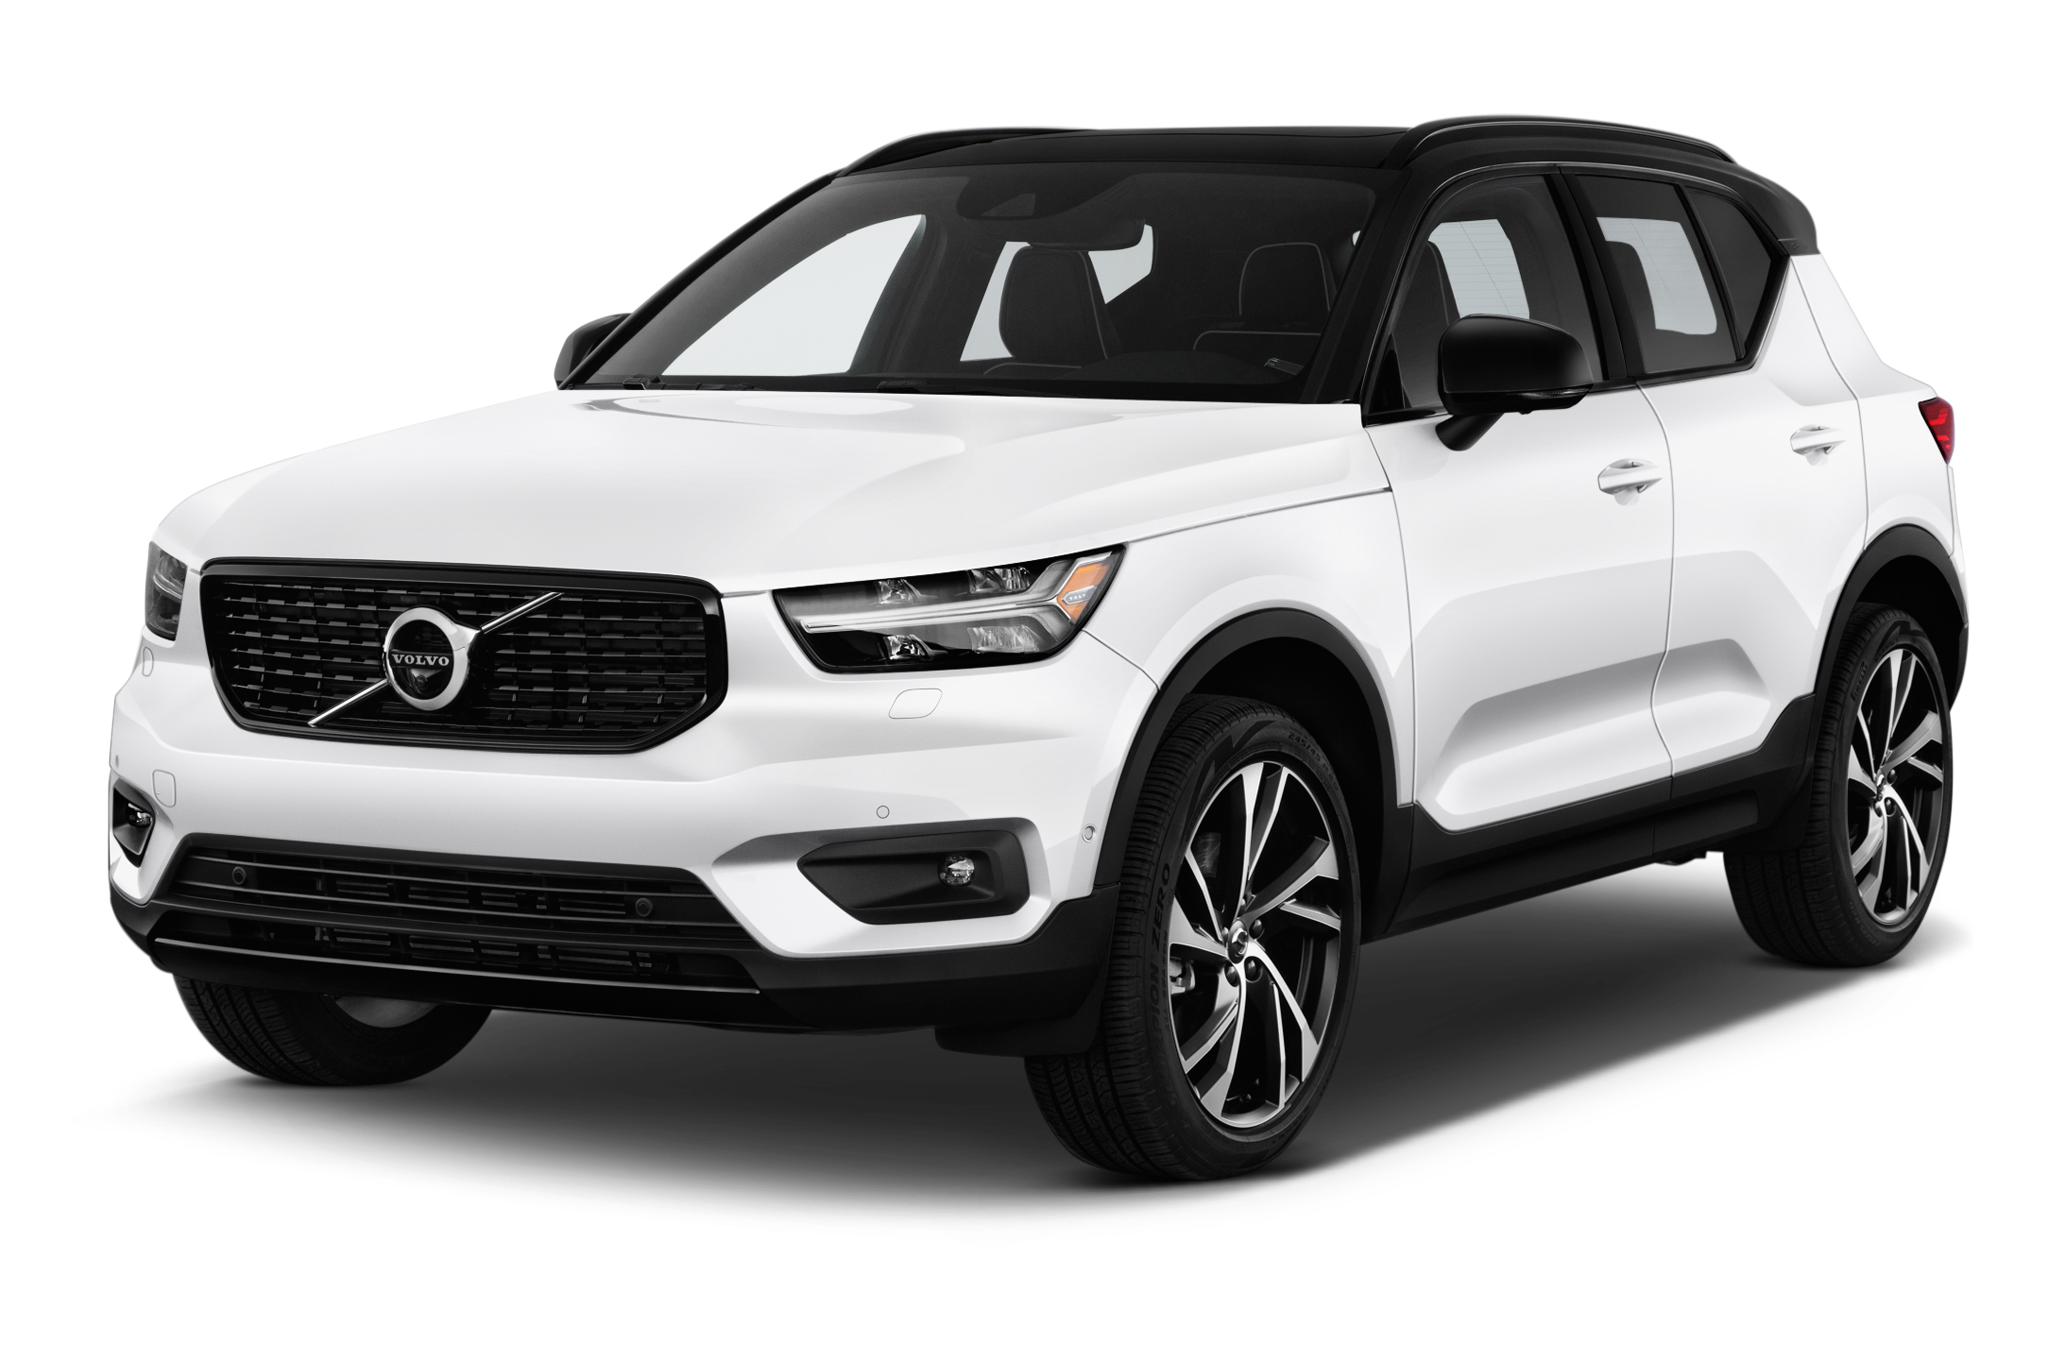 2019 volvo xc40 t5 r-design awd pricing